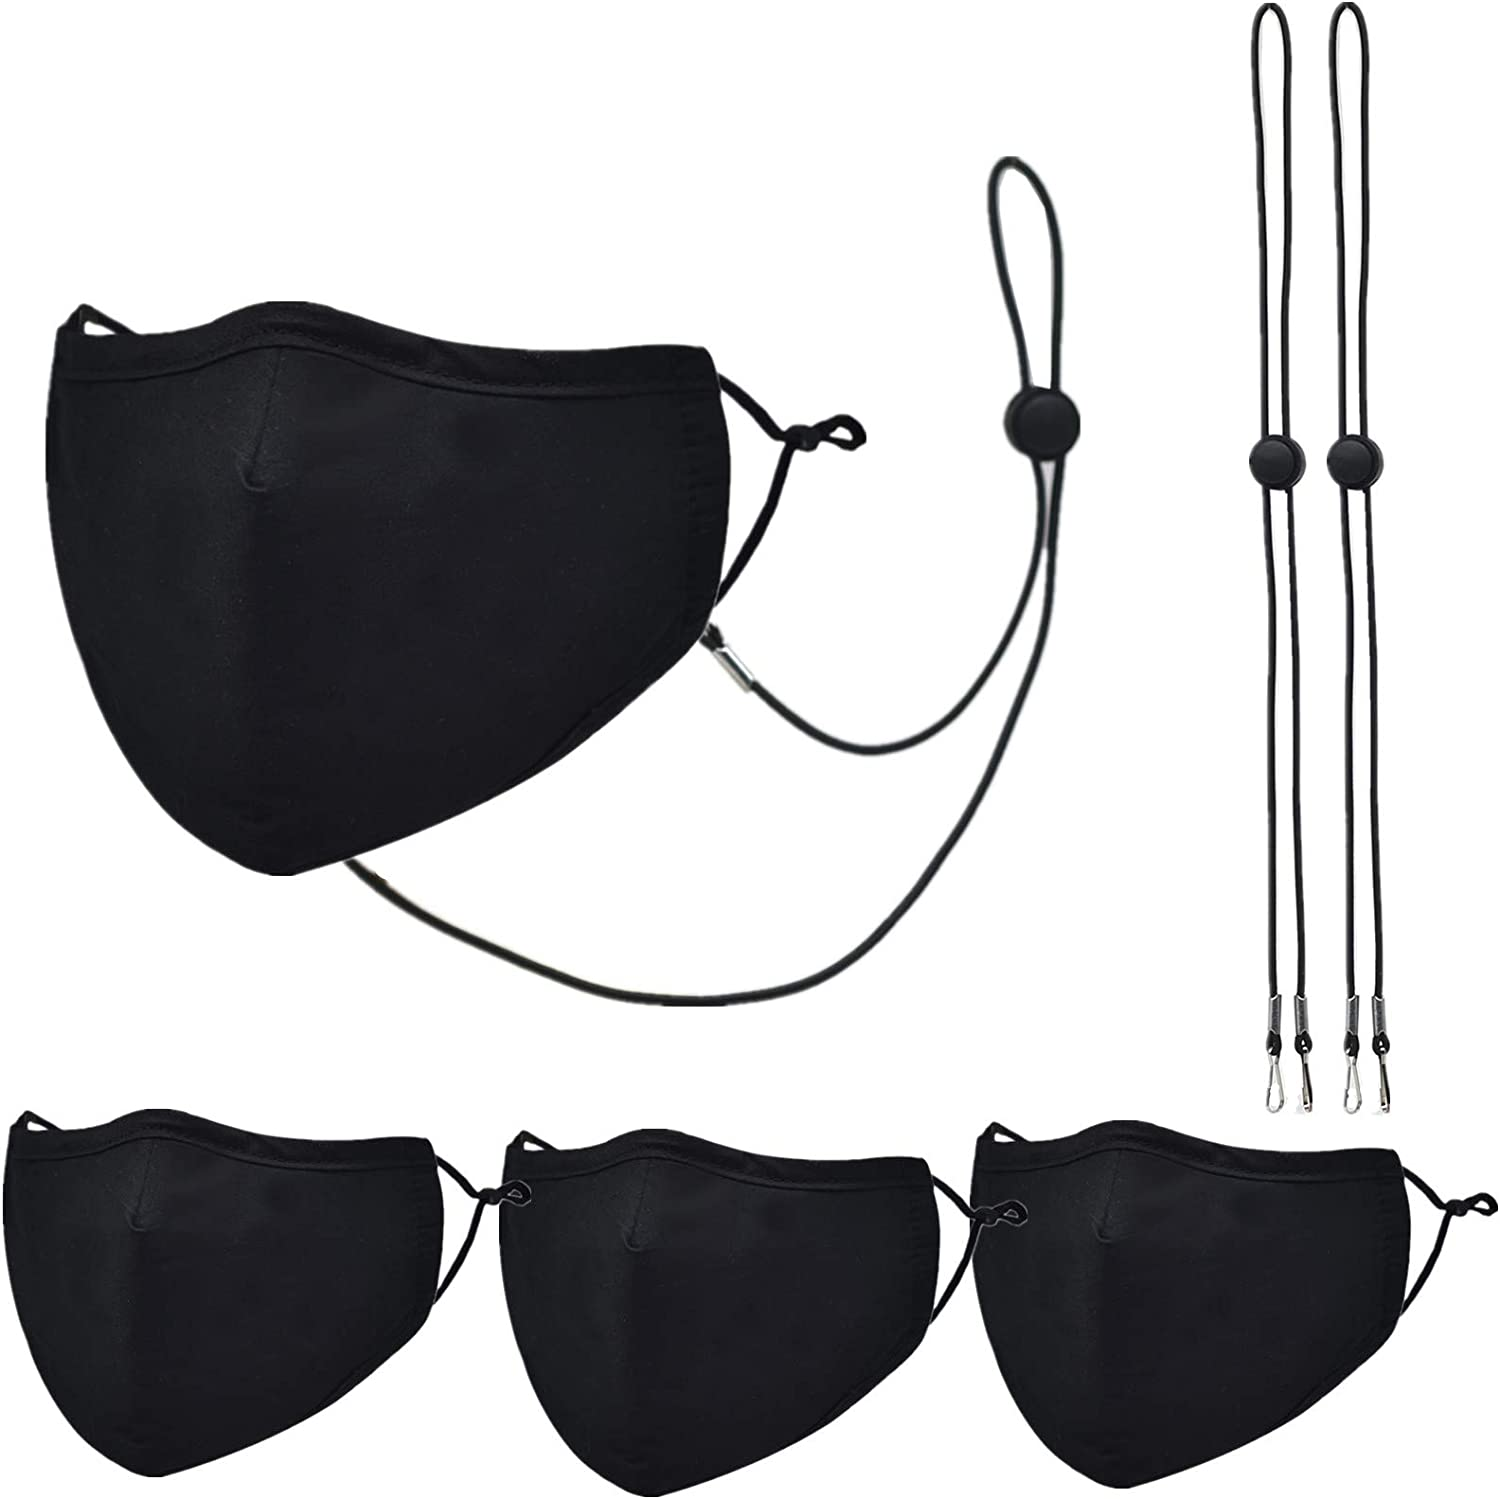 3 Packs unisex Cotton Face Mask,Adjustable Washable Popular product R and Earloop